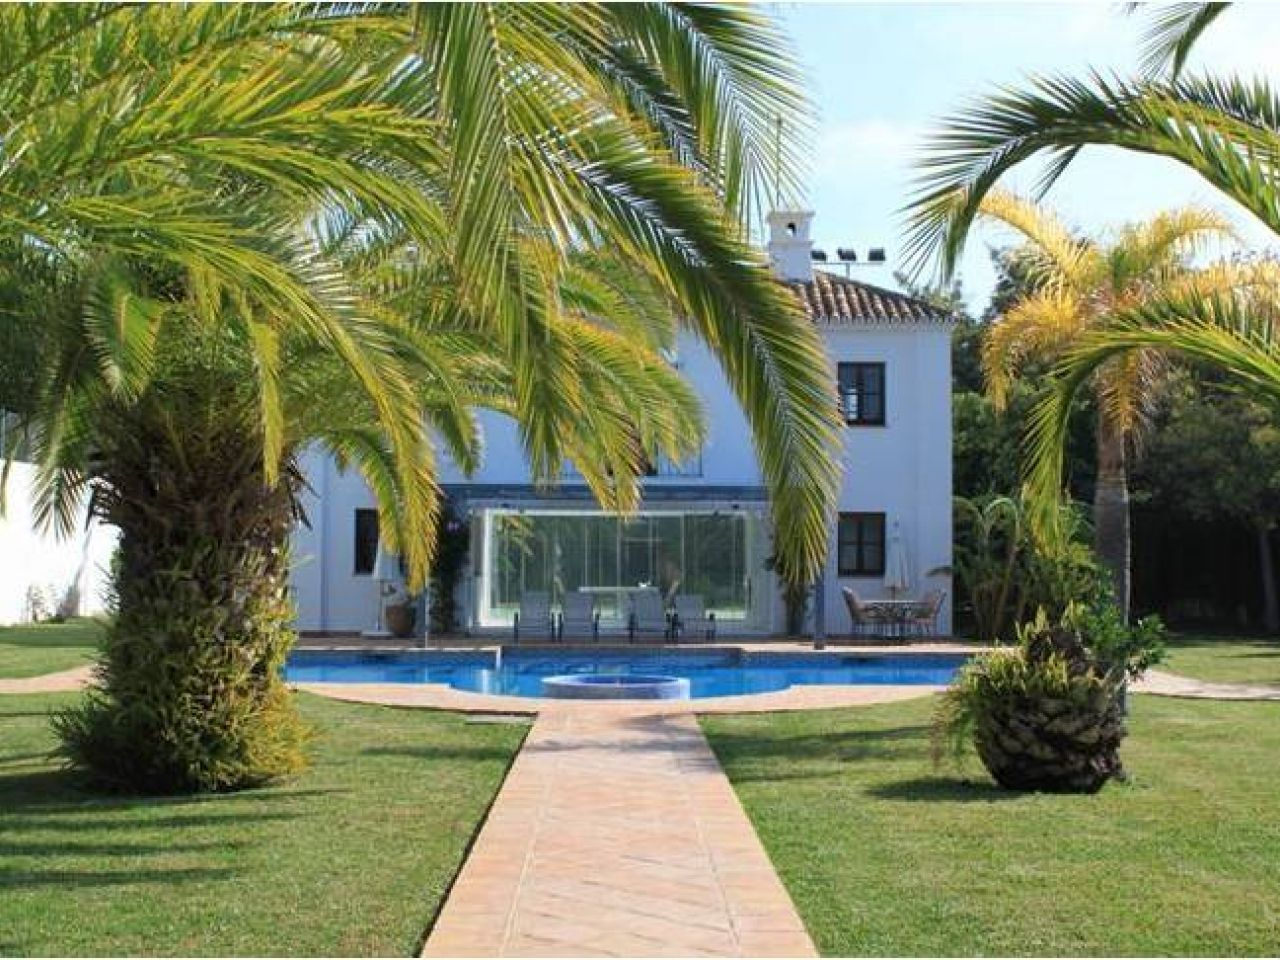 Moradia para Venda às New villa located close to the sea Marbella, Costa Del Sol, 29679 Espanha